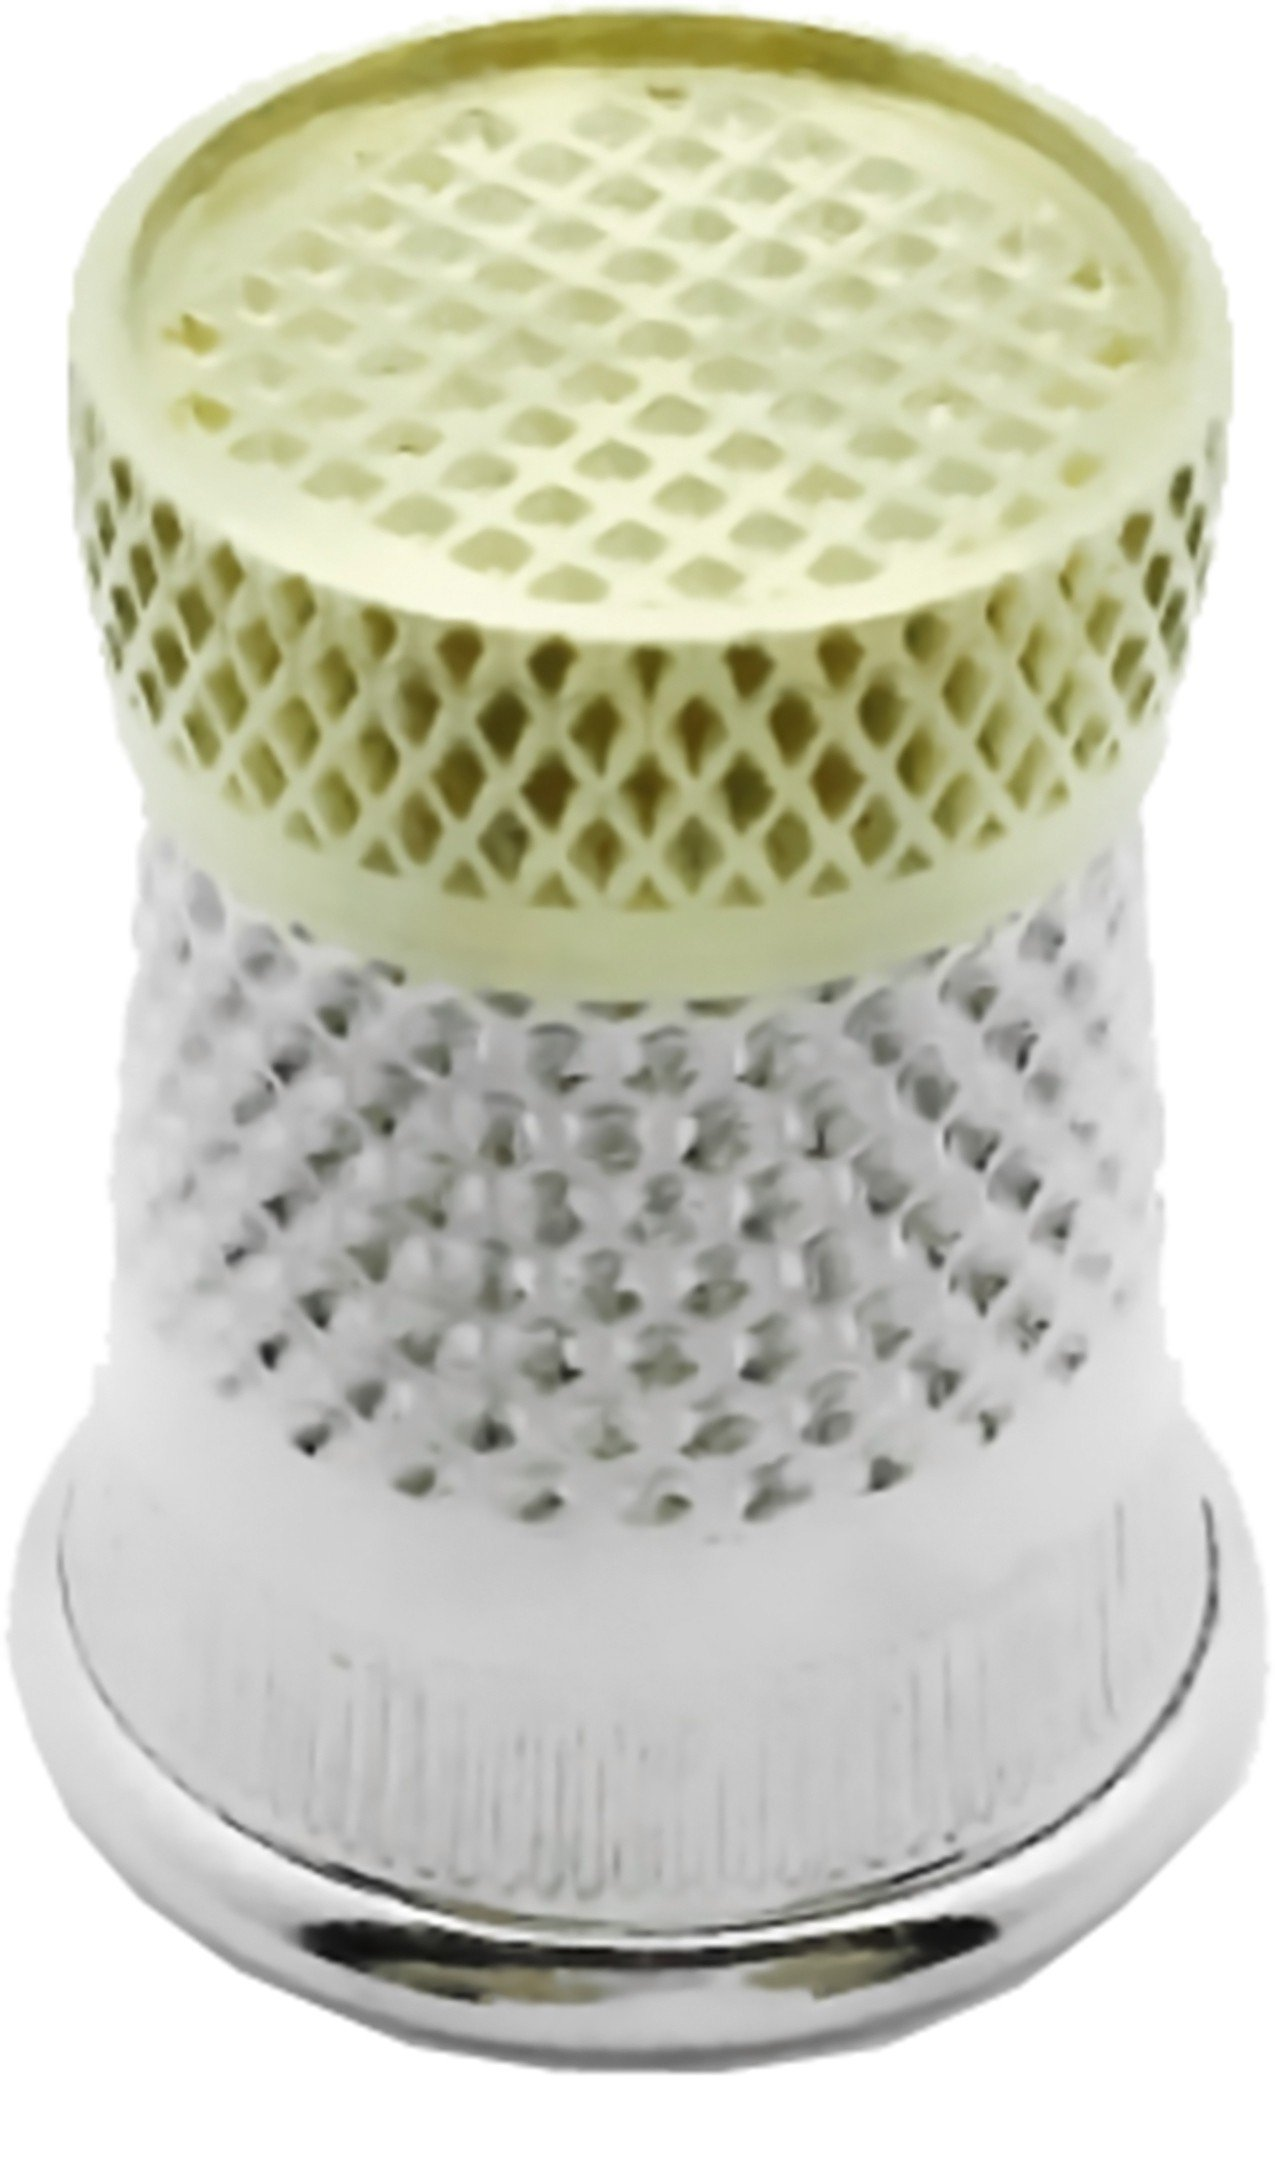 Colonial Needle SST-6 Raised Edge Thimble, Size 6 by Colonial Needle